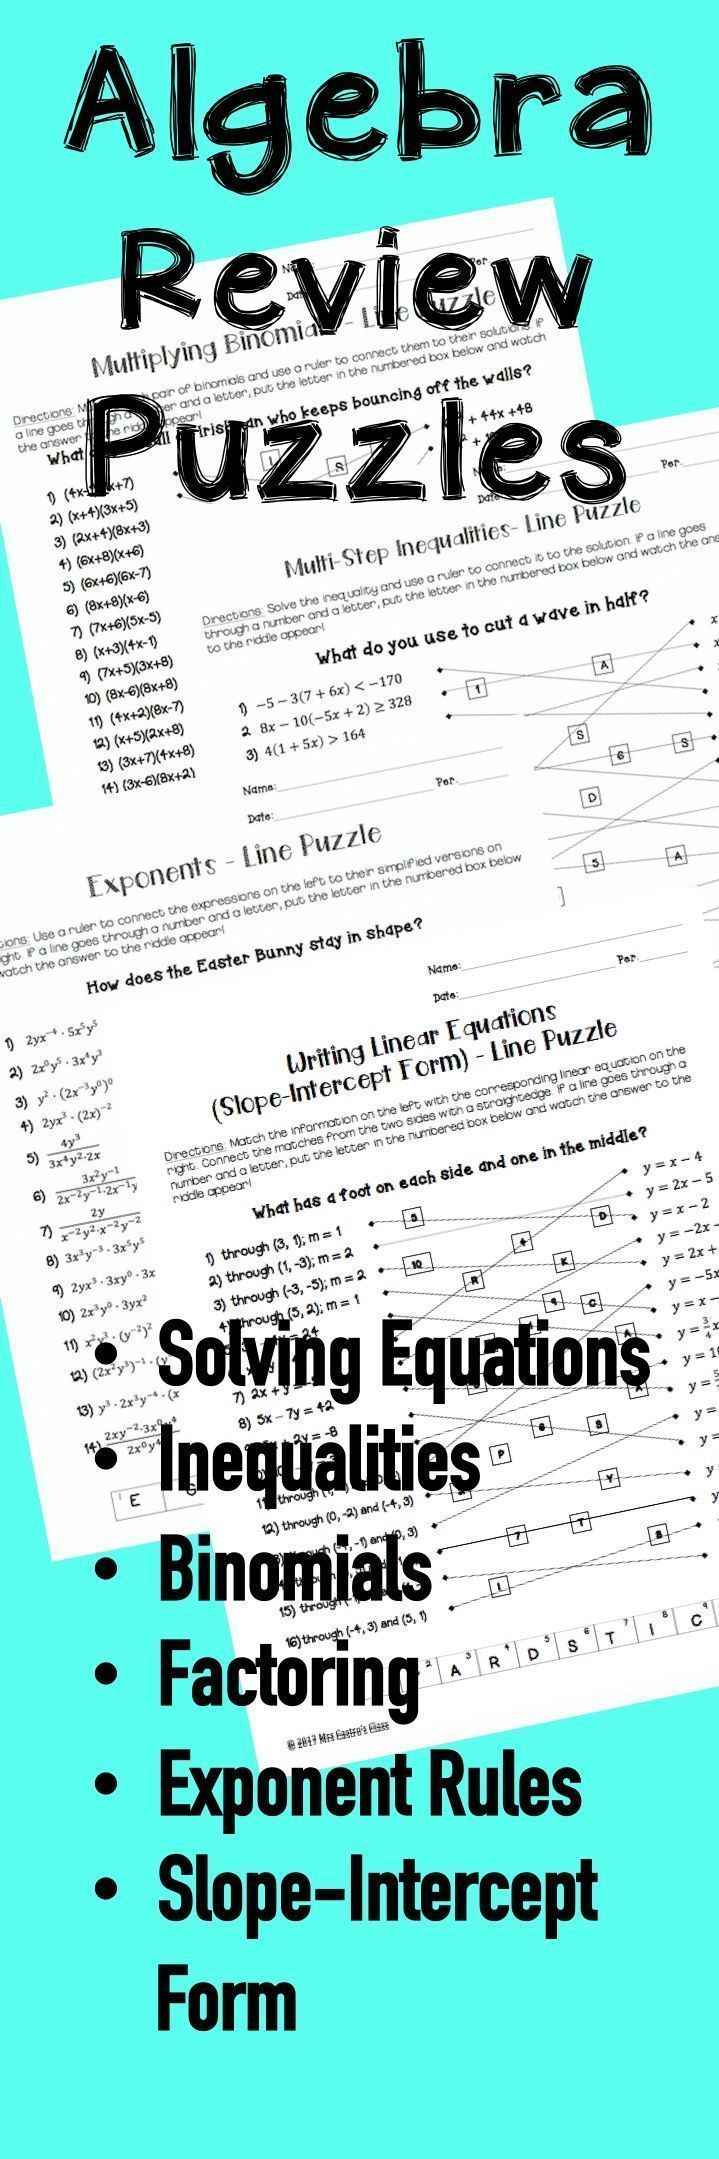 Algebra review puzzle worksheets. Order of operations